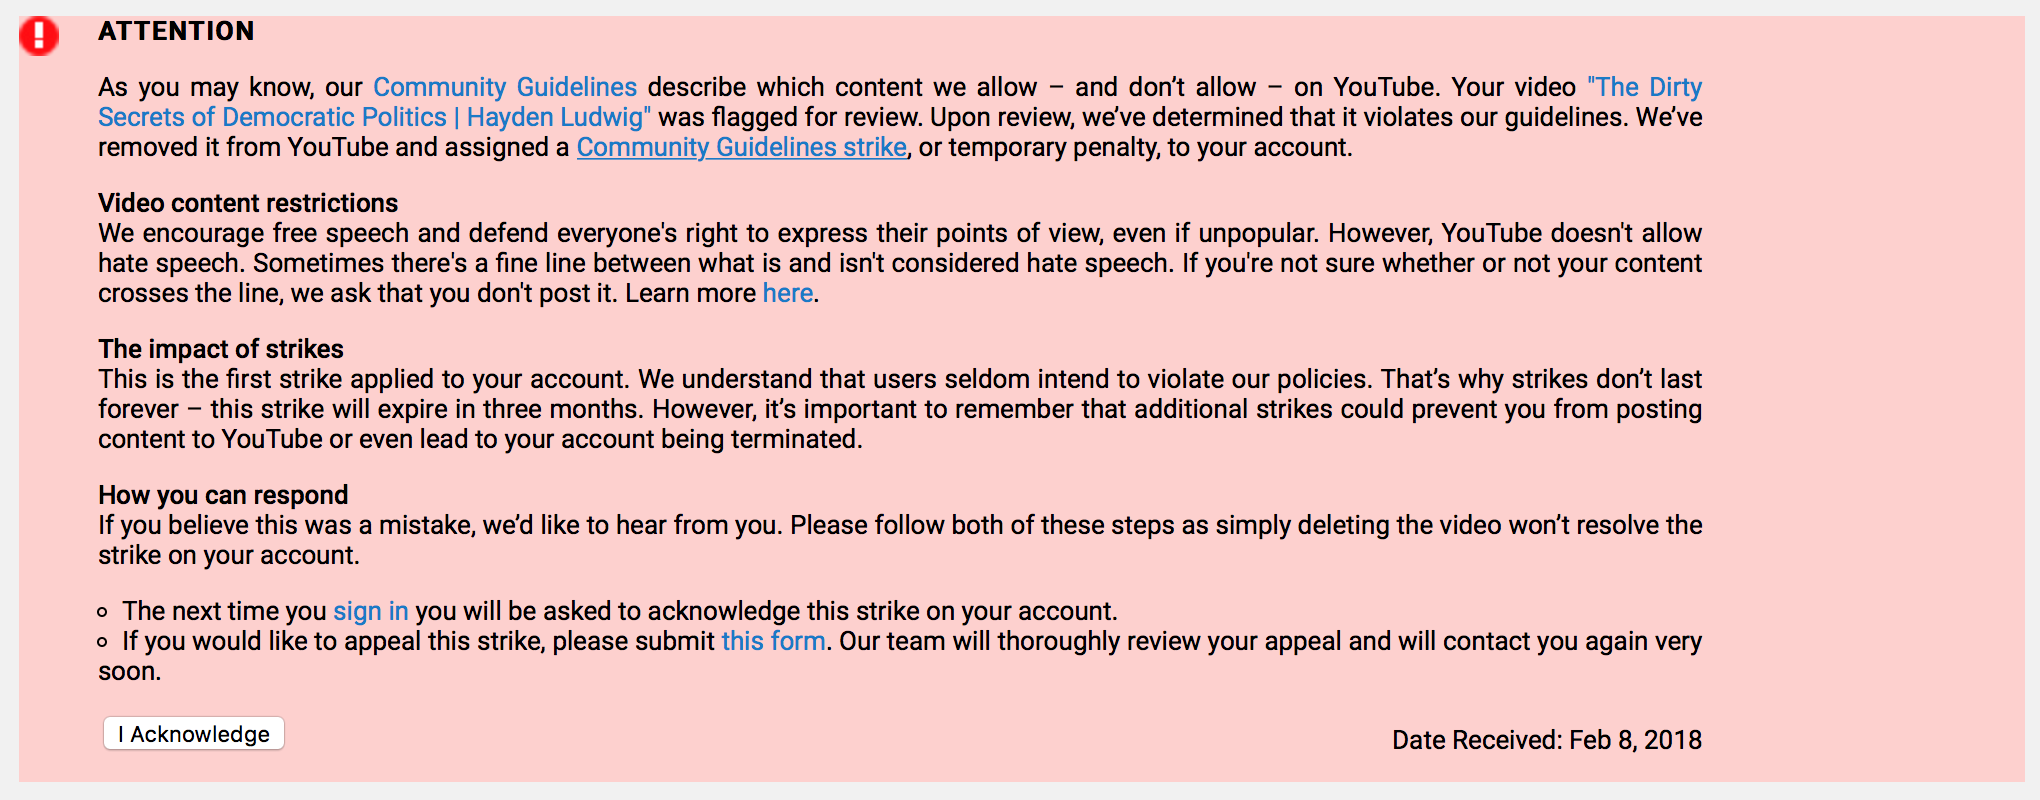 Youtube tried to censor us capital research center in less than 6 hours our videowhich contains no hate speech or other violations of youtubes community guidelines of any kind and even used footage biocorpaavc Images